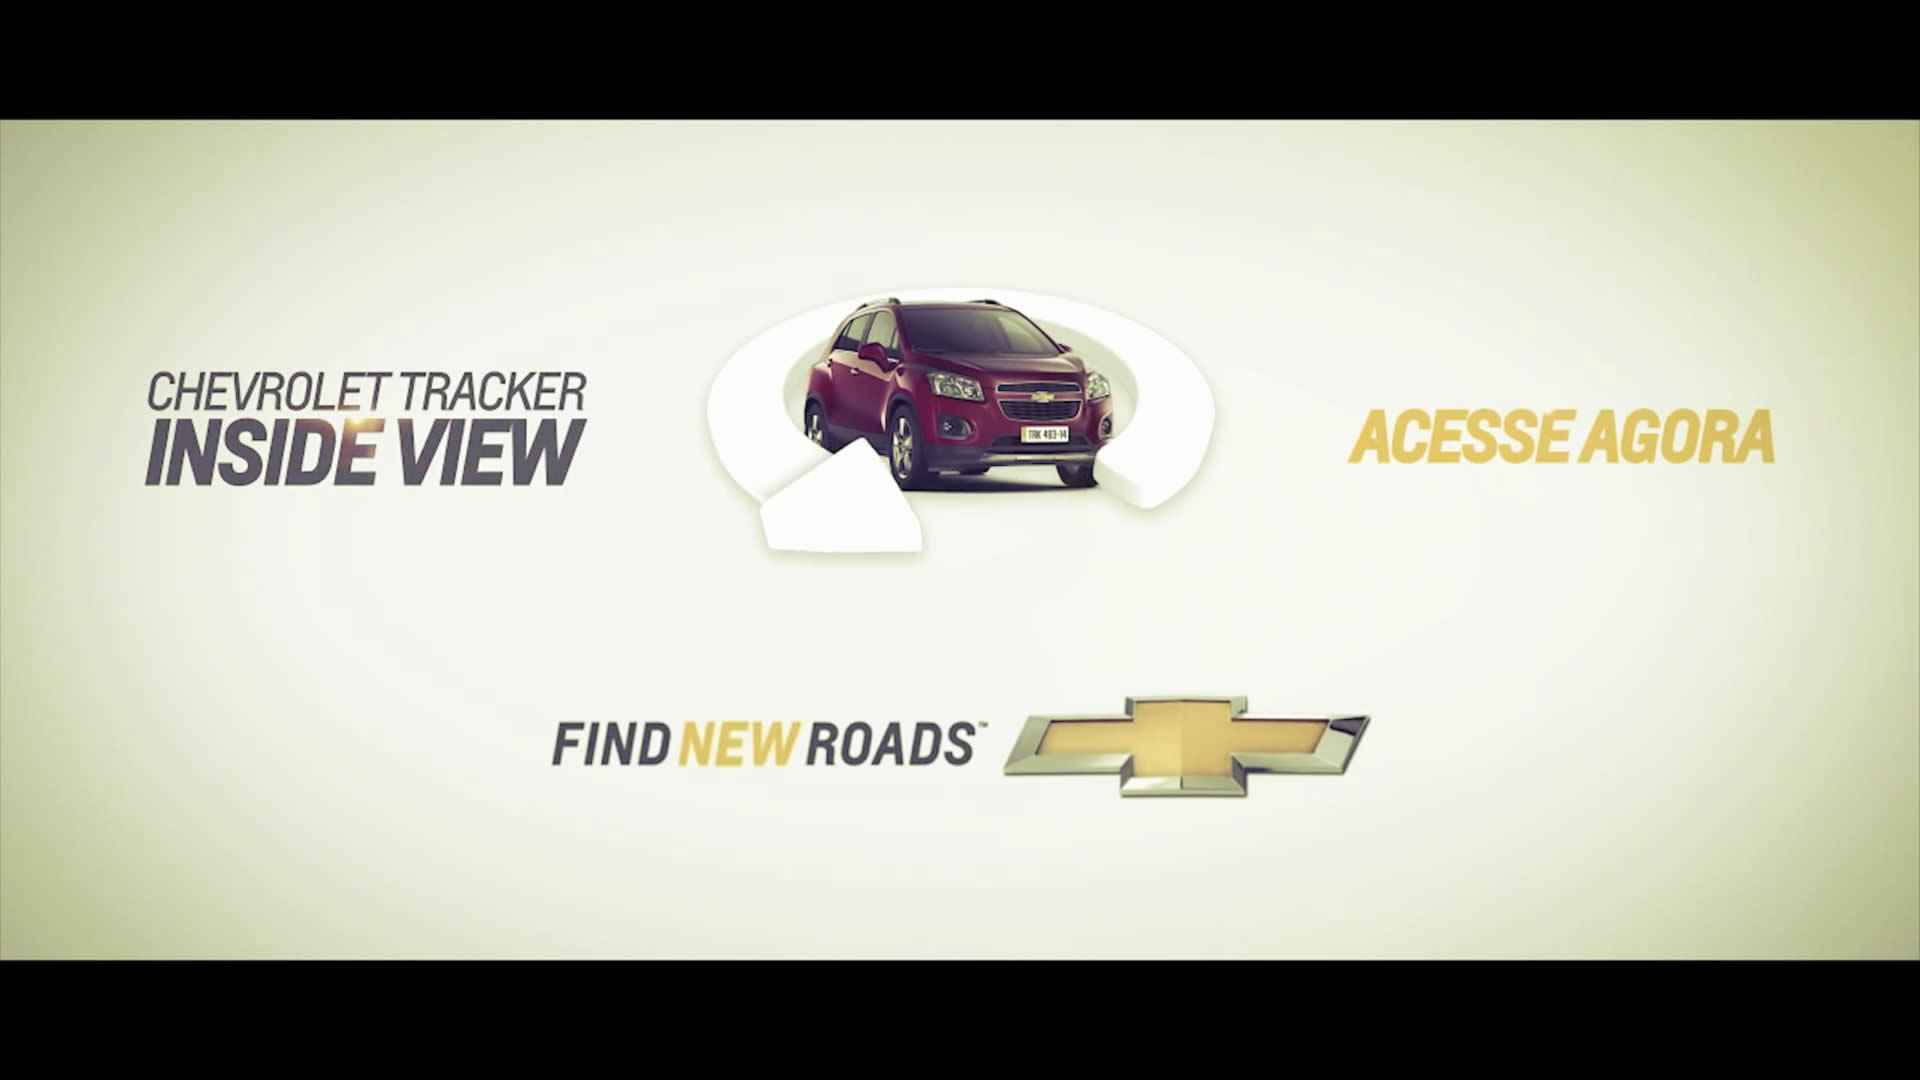 Chevrolet Tracker Inside View - Tour Virtual 360 graus